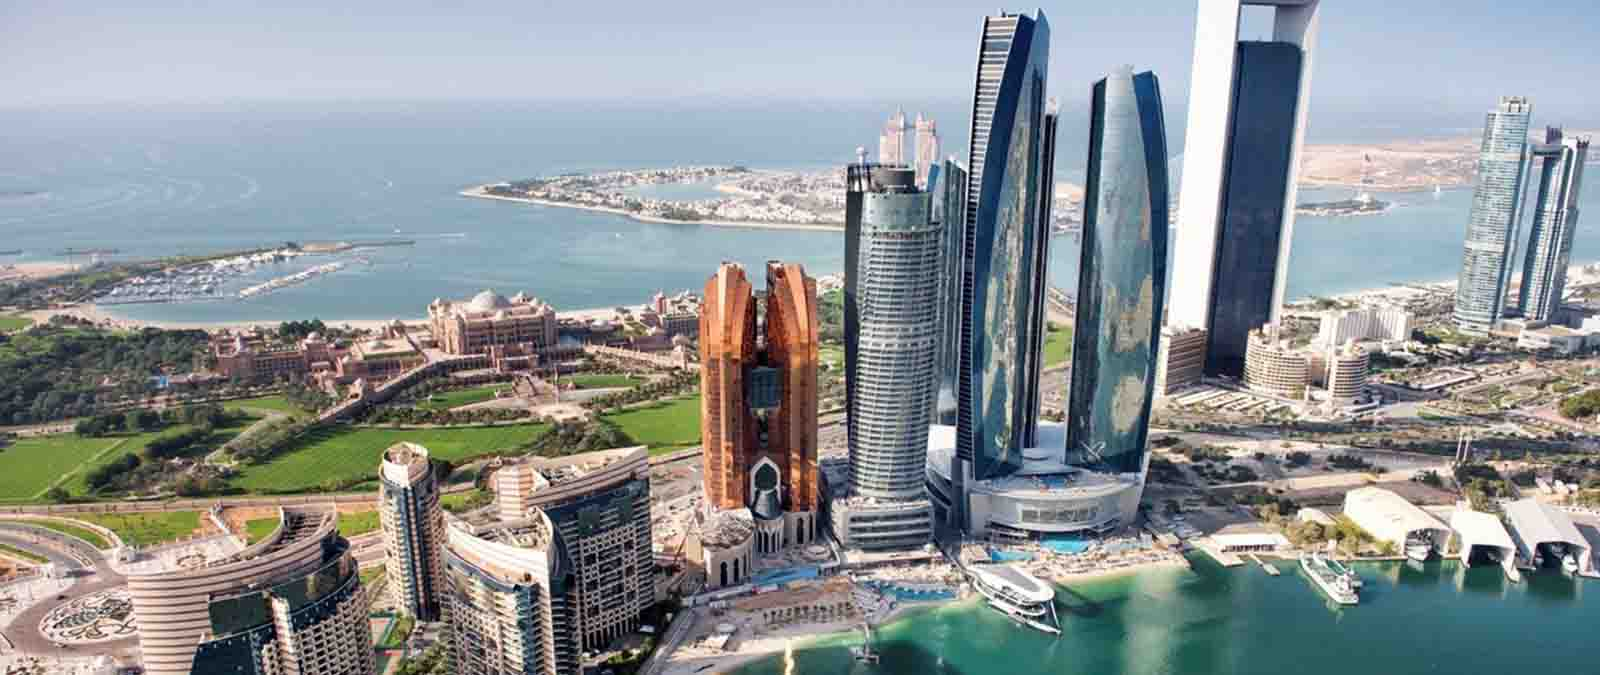 The new Embassy in Abu Dhabi will bring exclusive benefits to Dominica citizens residing in the UAE and the region.